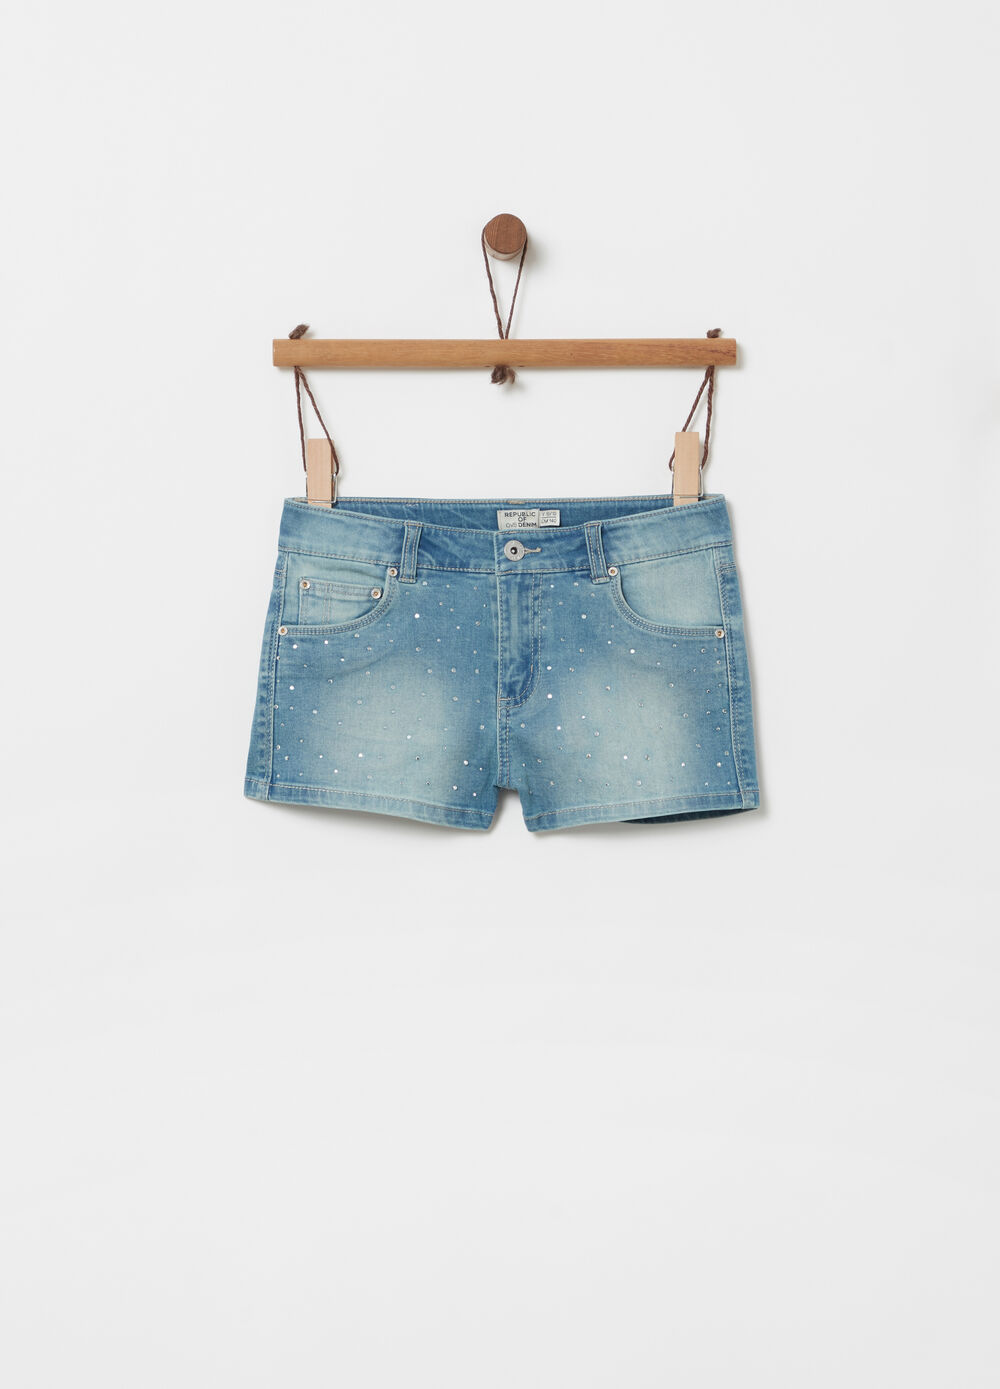 Shorts denim vita regolabile tasche studs